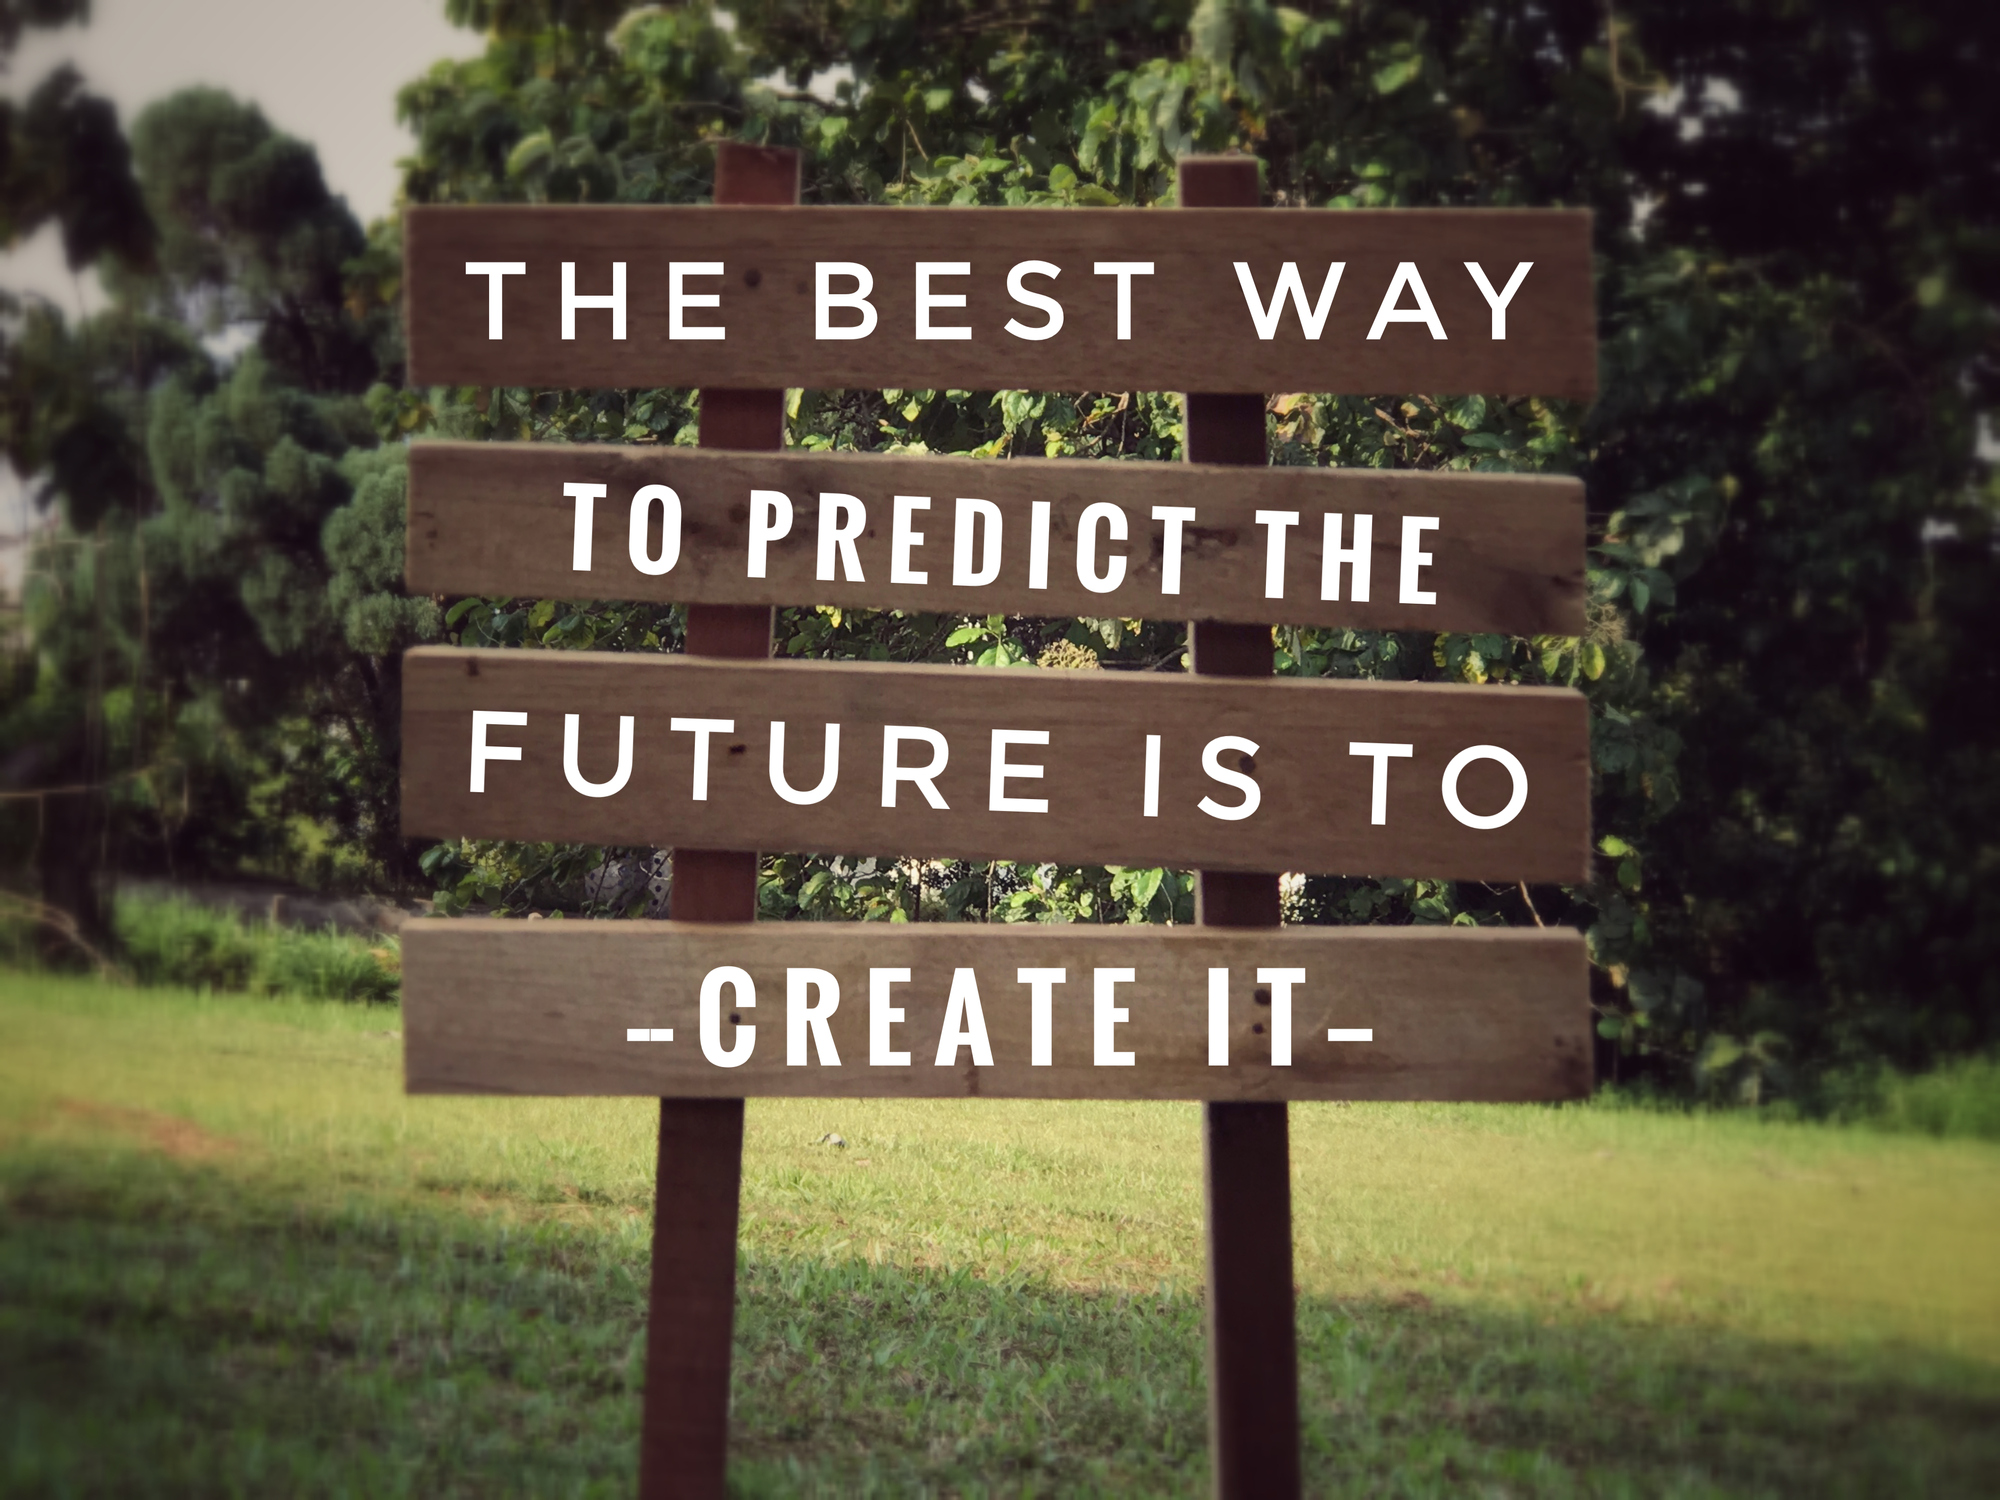 'The best way to predict the future is to create it' on plank signage. With vintage styled background.